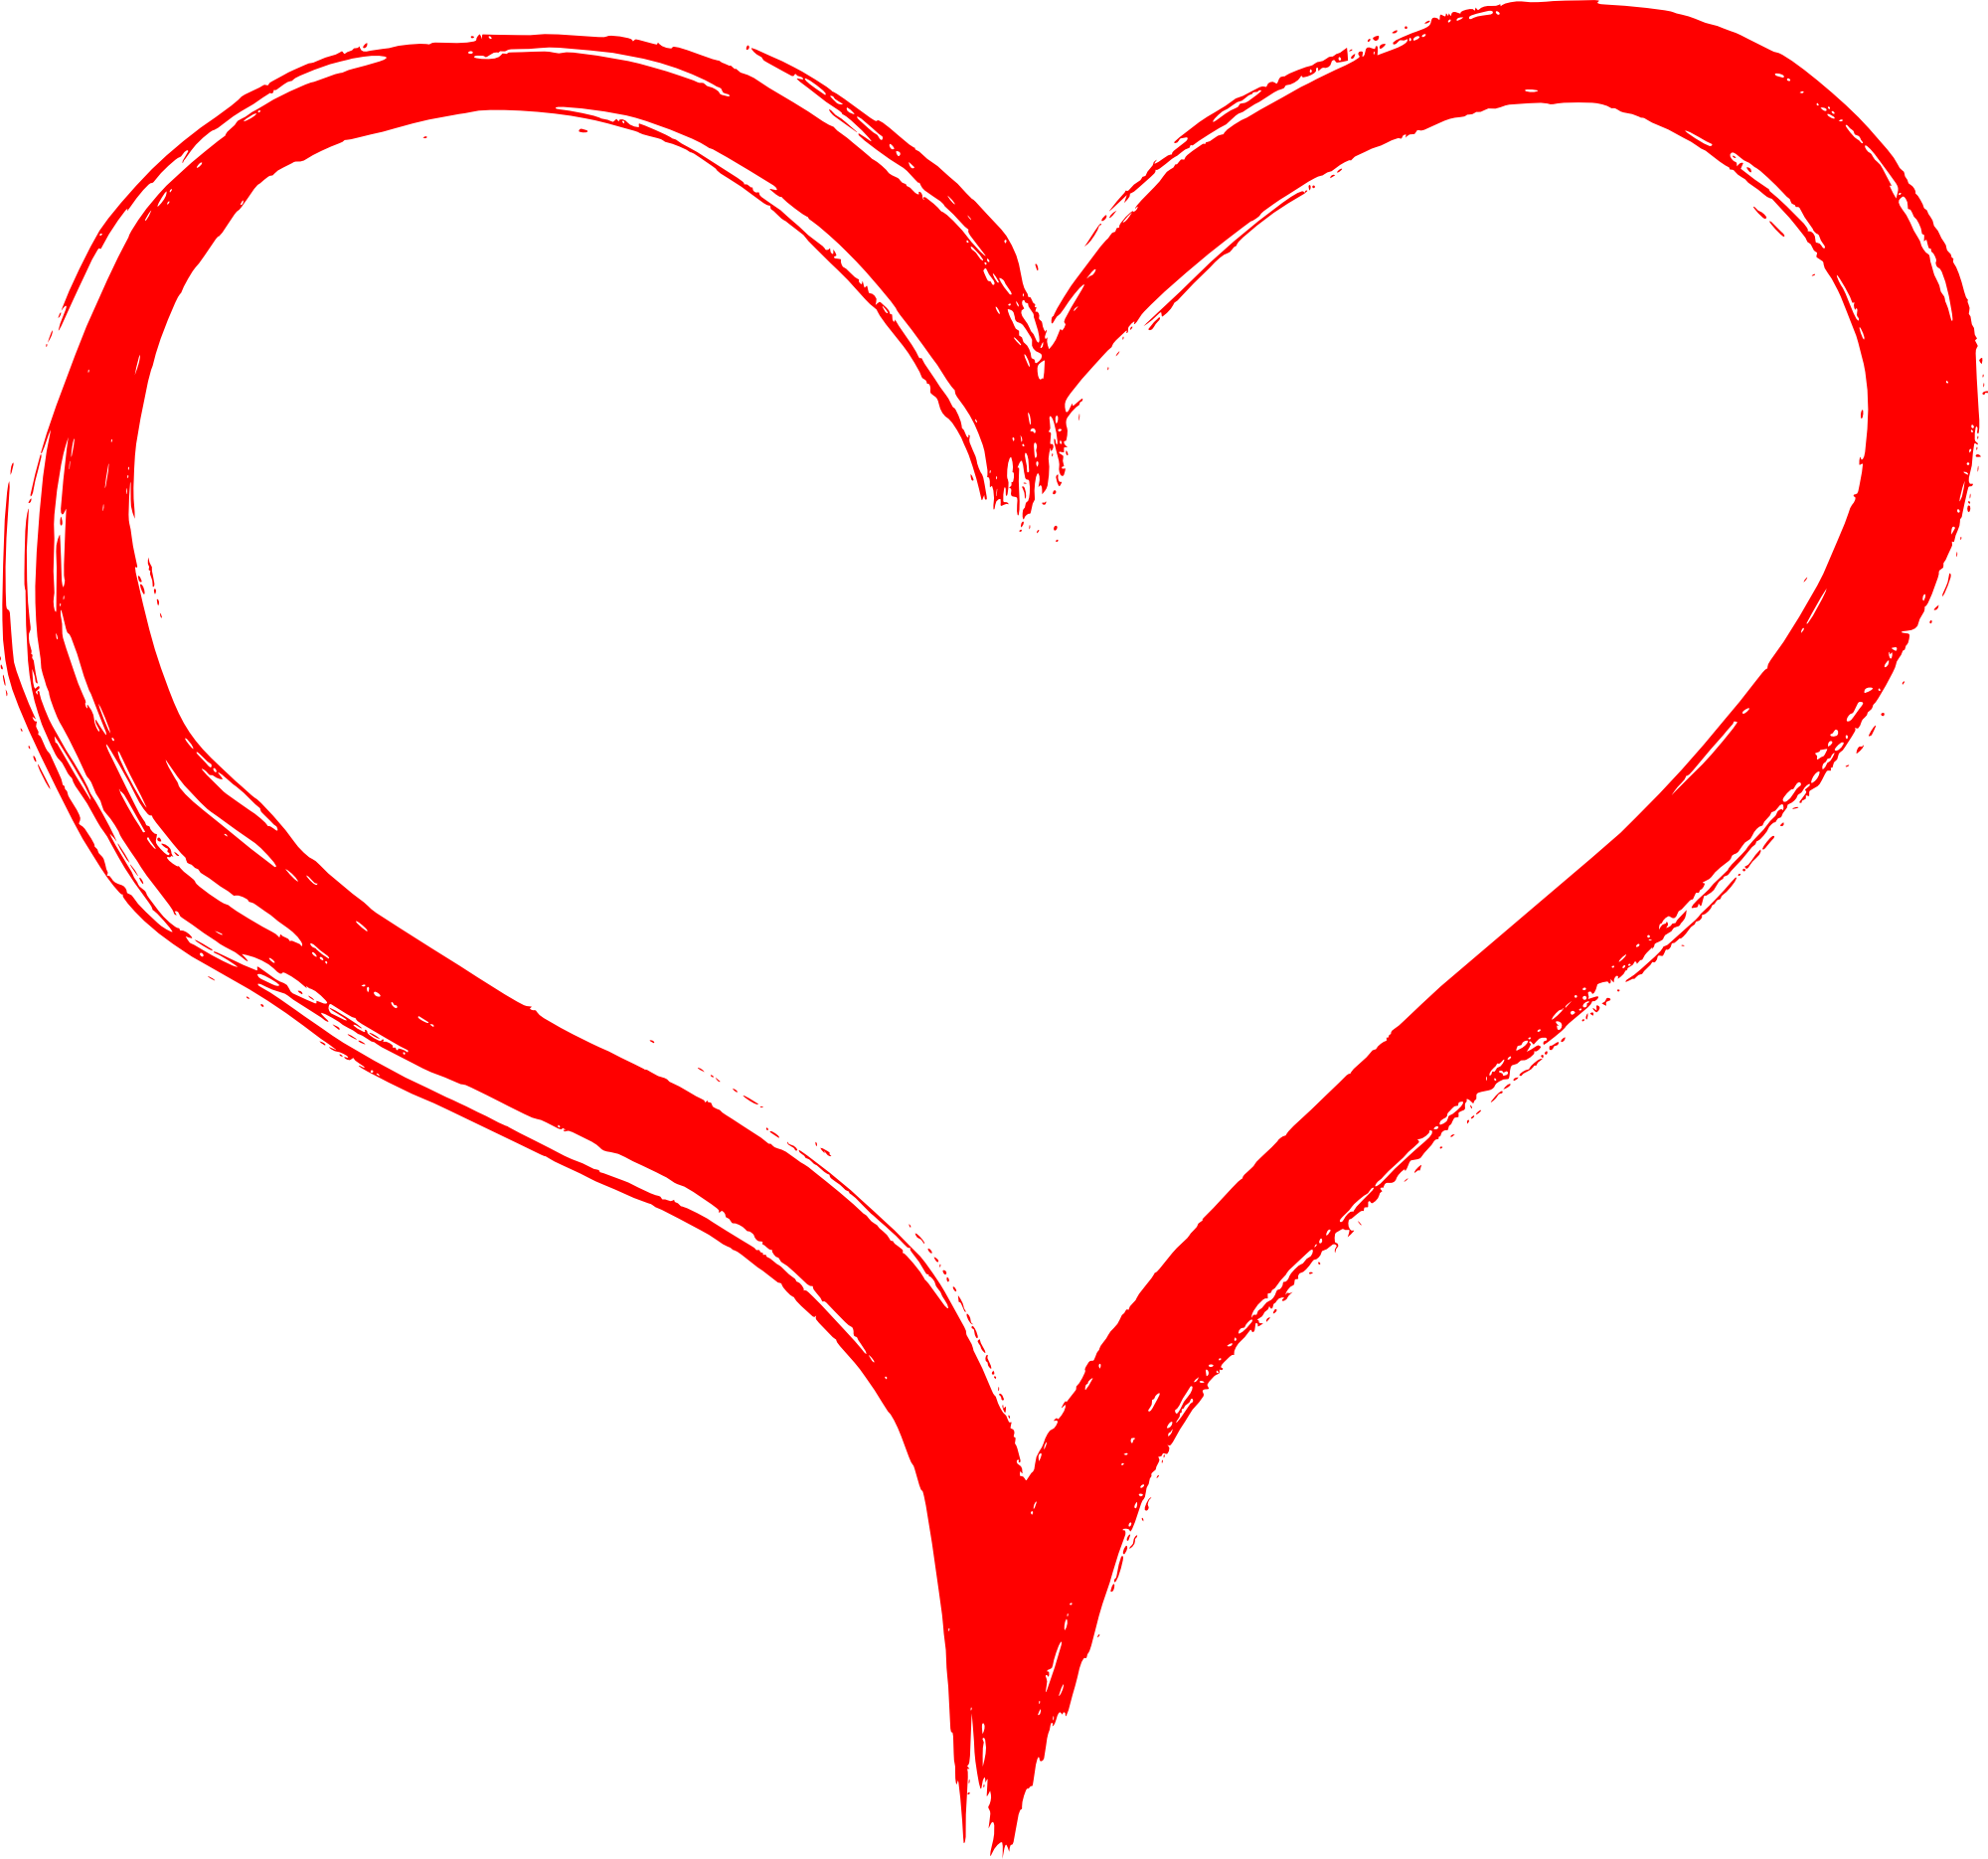 Brush stroke heart clipart graphic royalty free stock Hand Drawn Heart PNG Transparent | OnlyGFX.com graphic royalty free stock